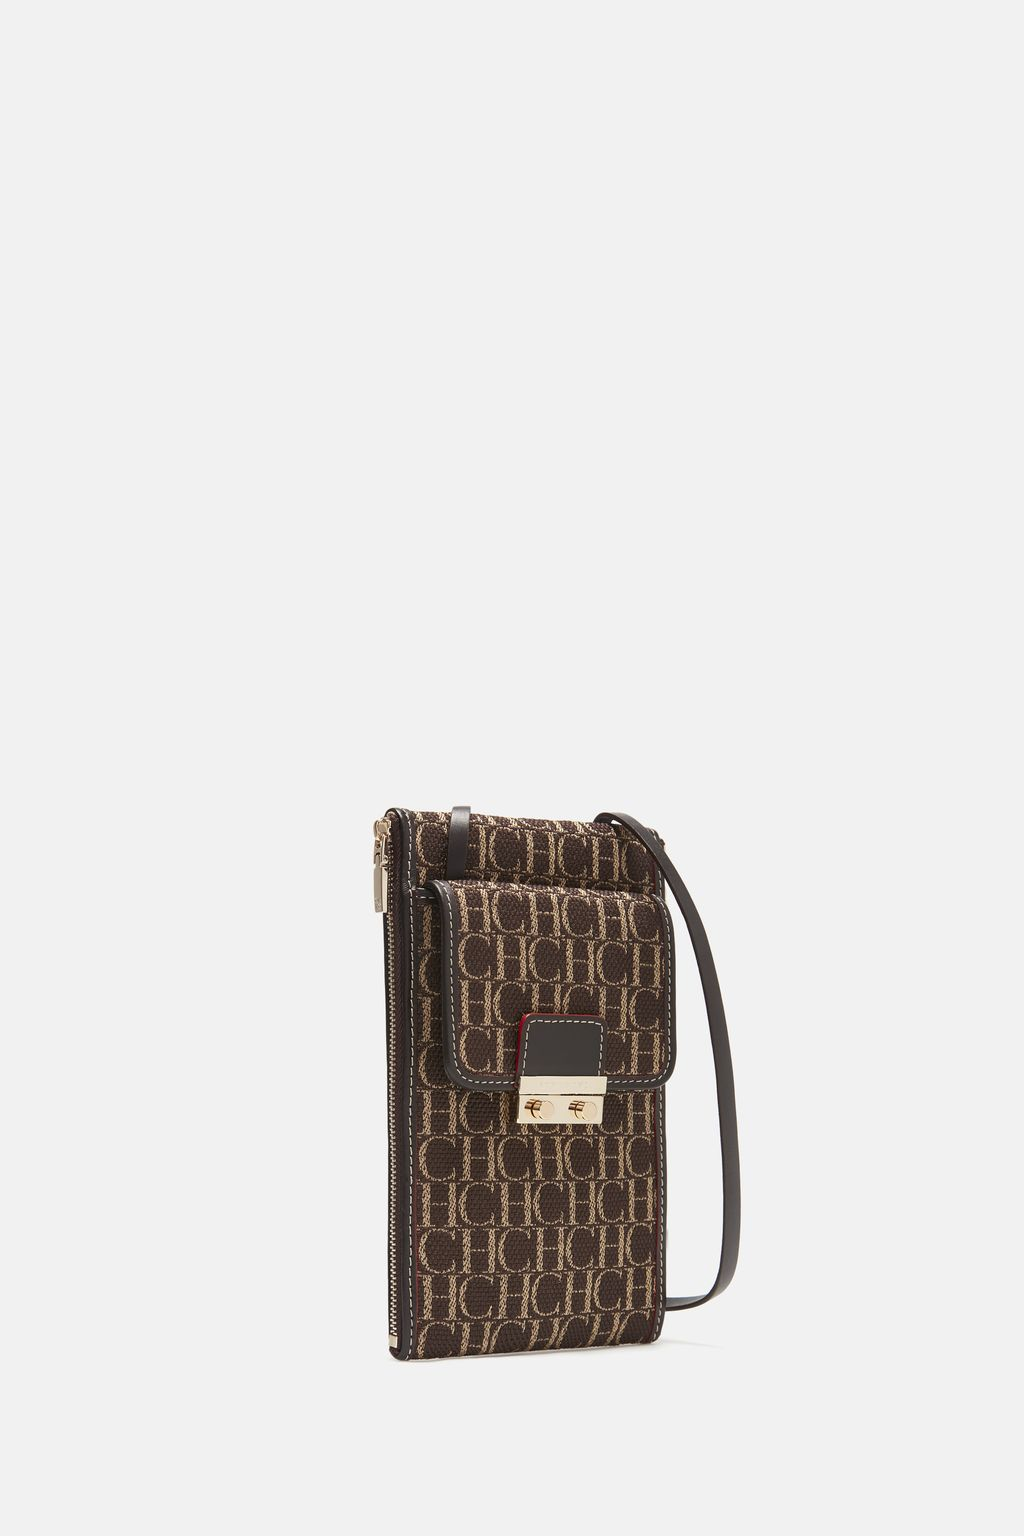 9 Inches | Small cross body bag